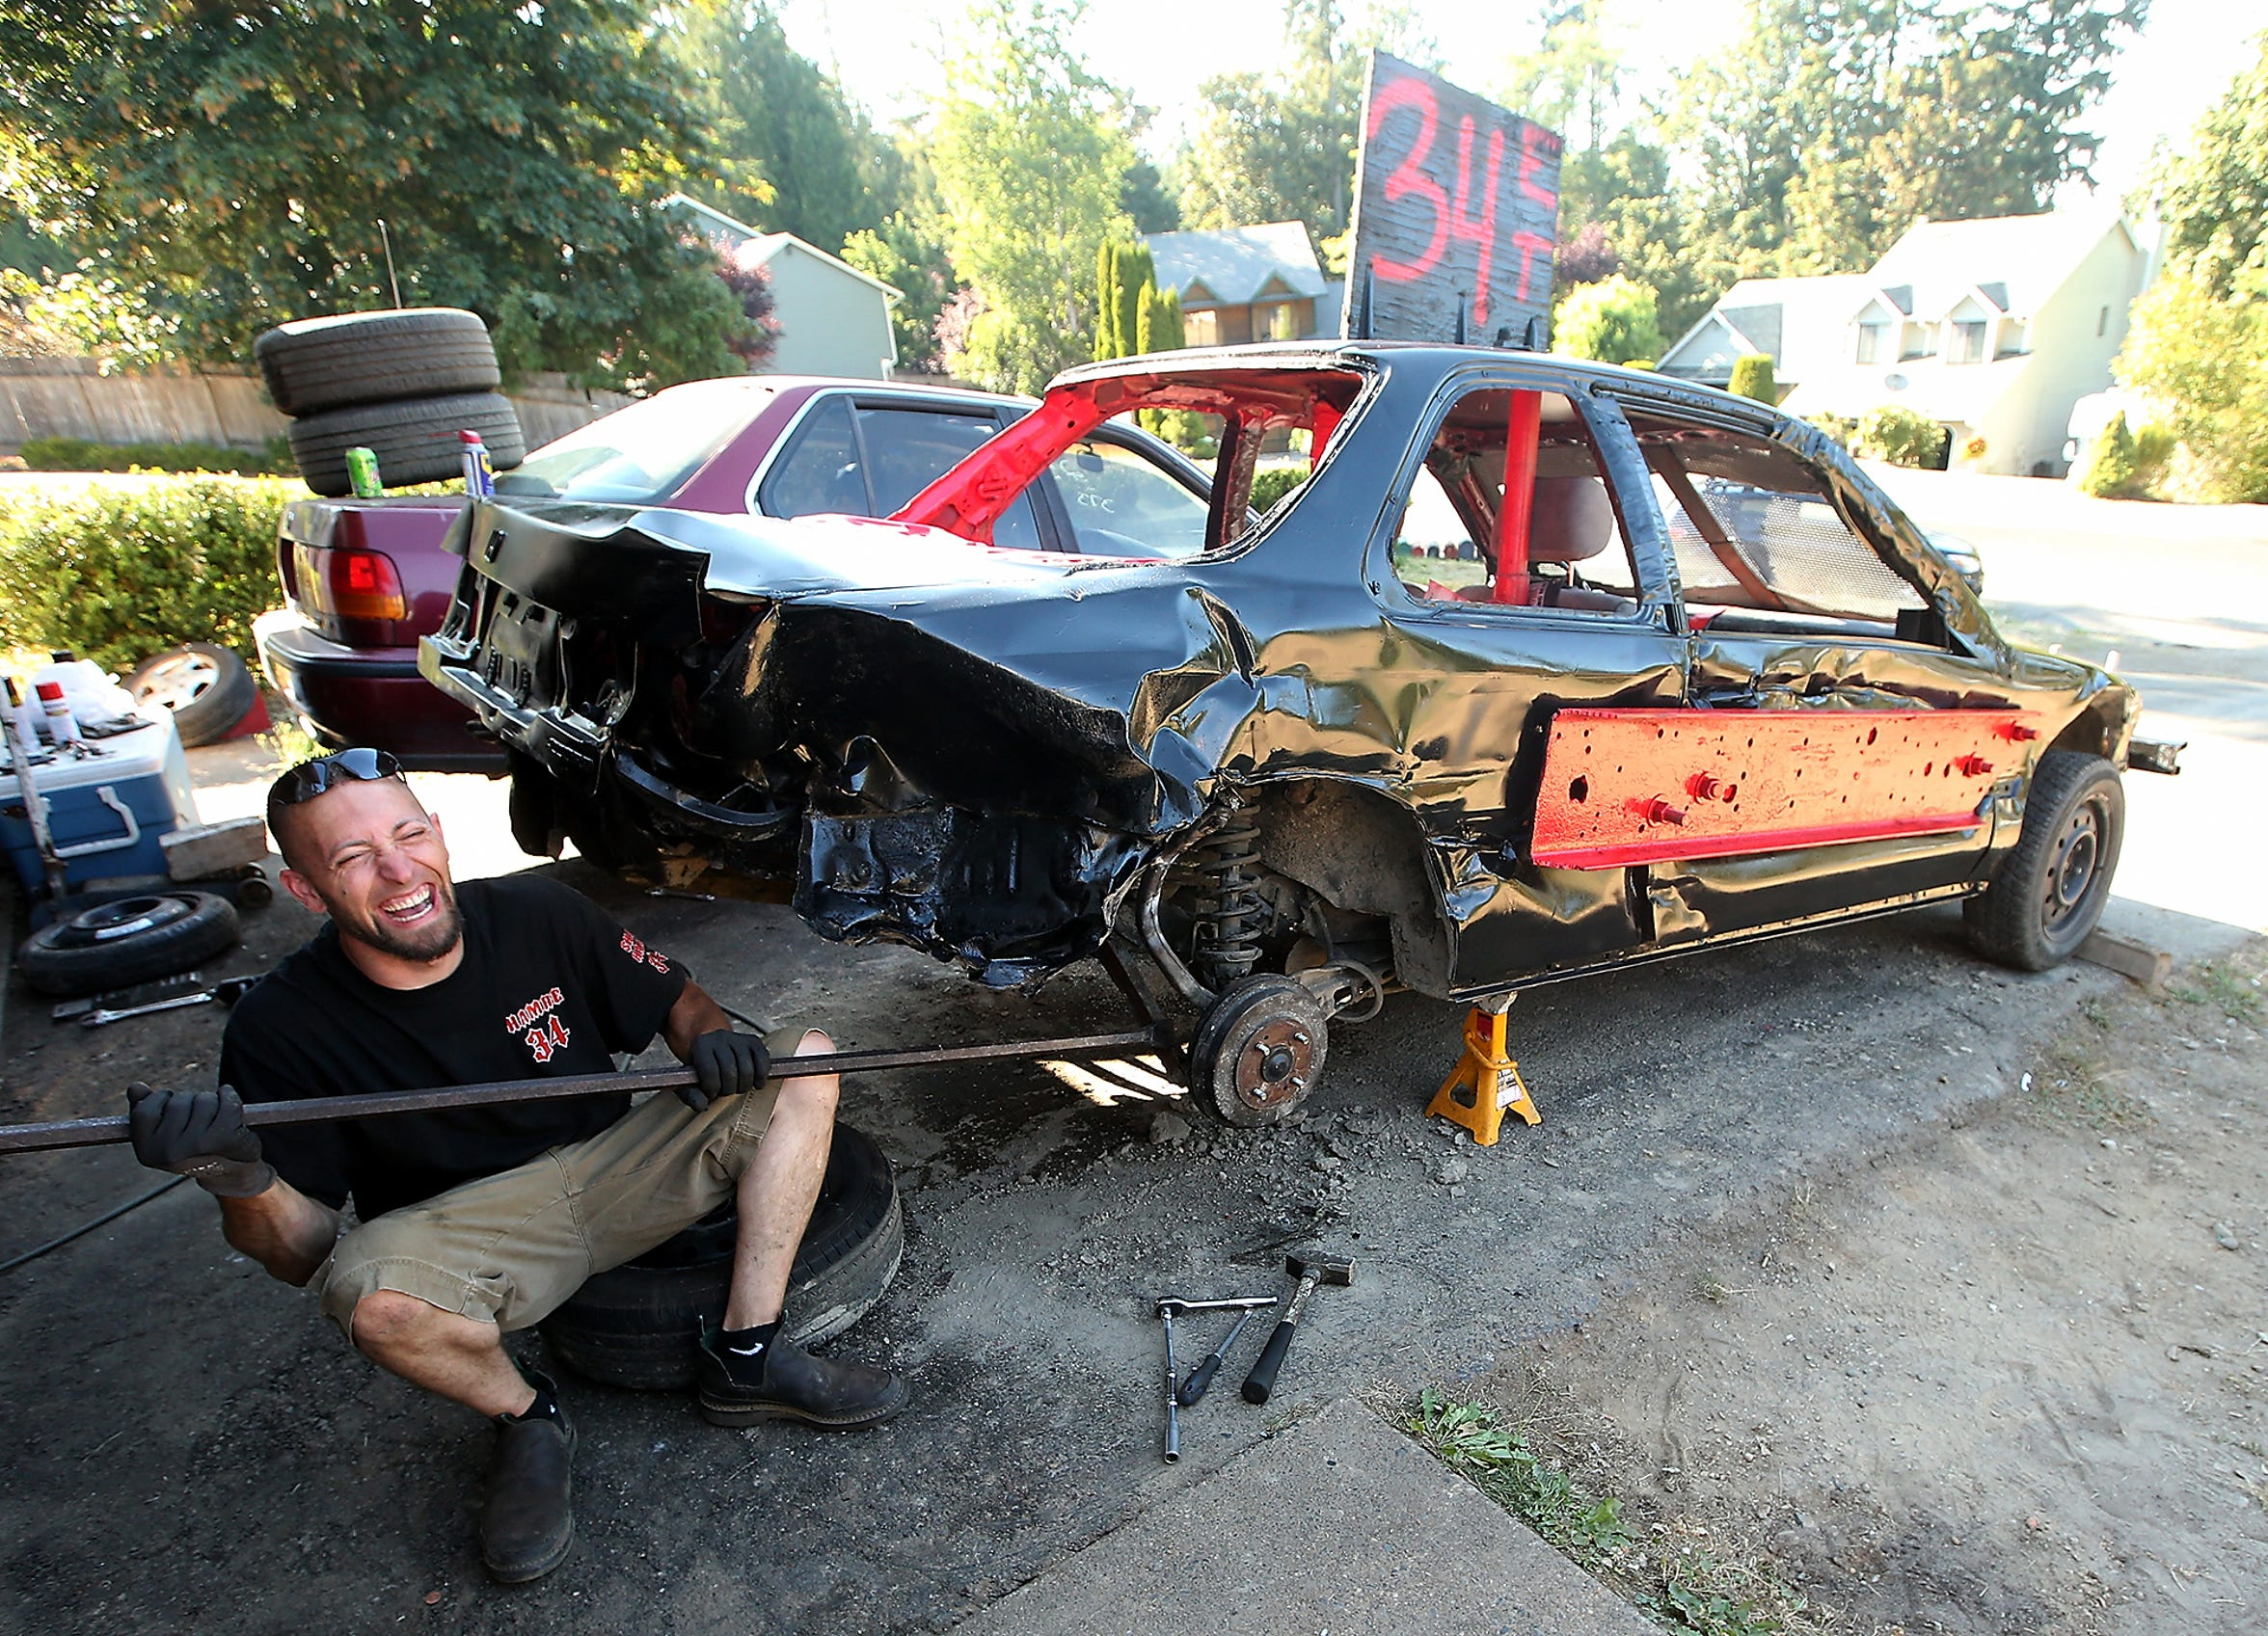 Shane Hamre replaces the struts on his car at his home near Bremerton on July 26. Hamre, one of the more successful drivers in the Kitsap derby, makes a habit of handing out Matchbox cars to kids at the six events held each summer.